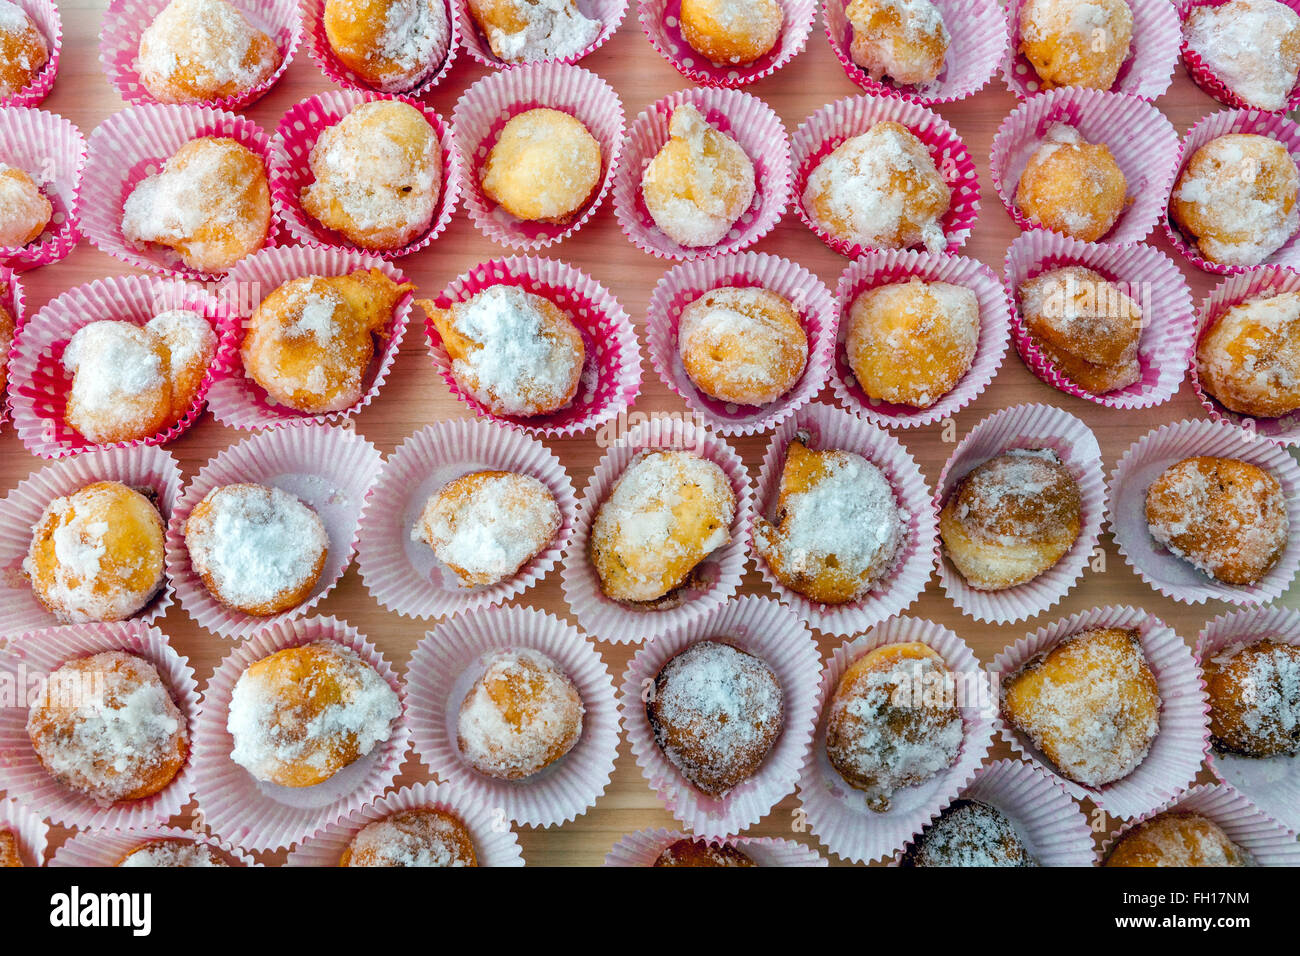 Czech homemade sweet little doughnuts in paper cases - Stock Image